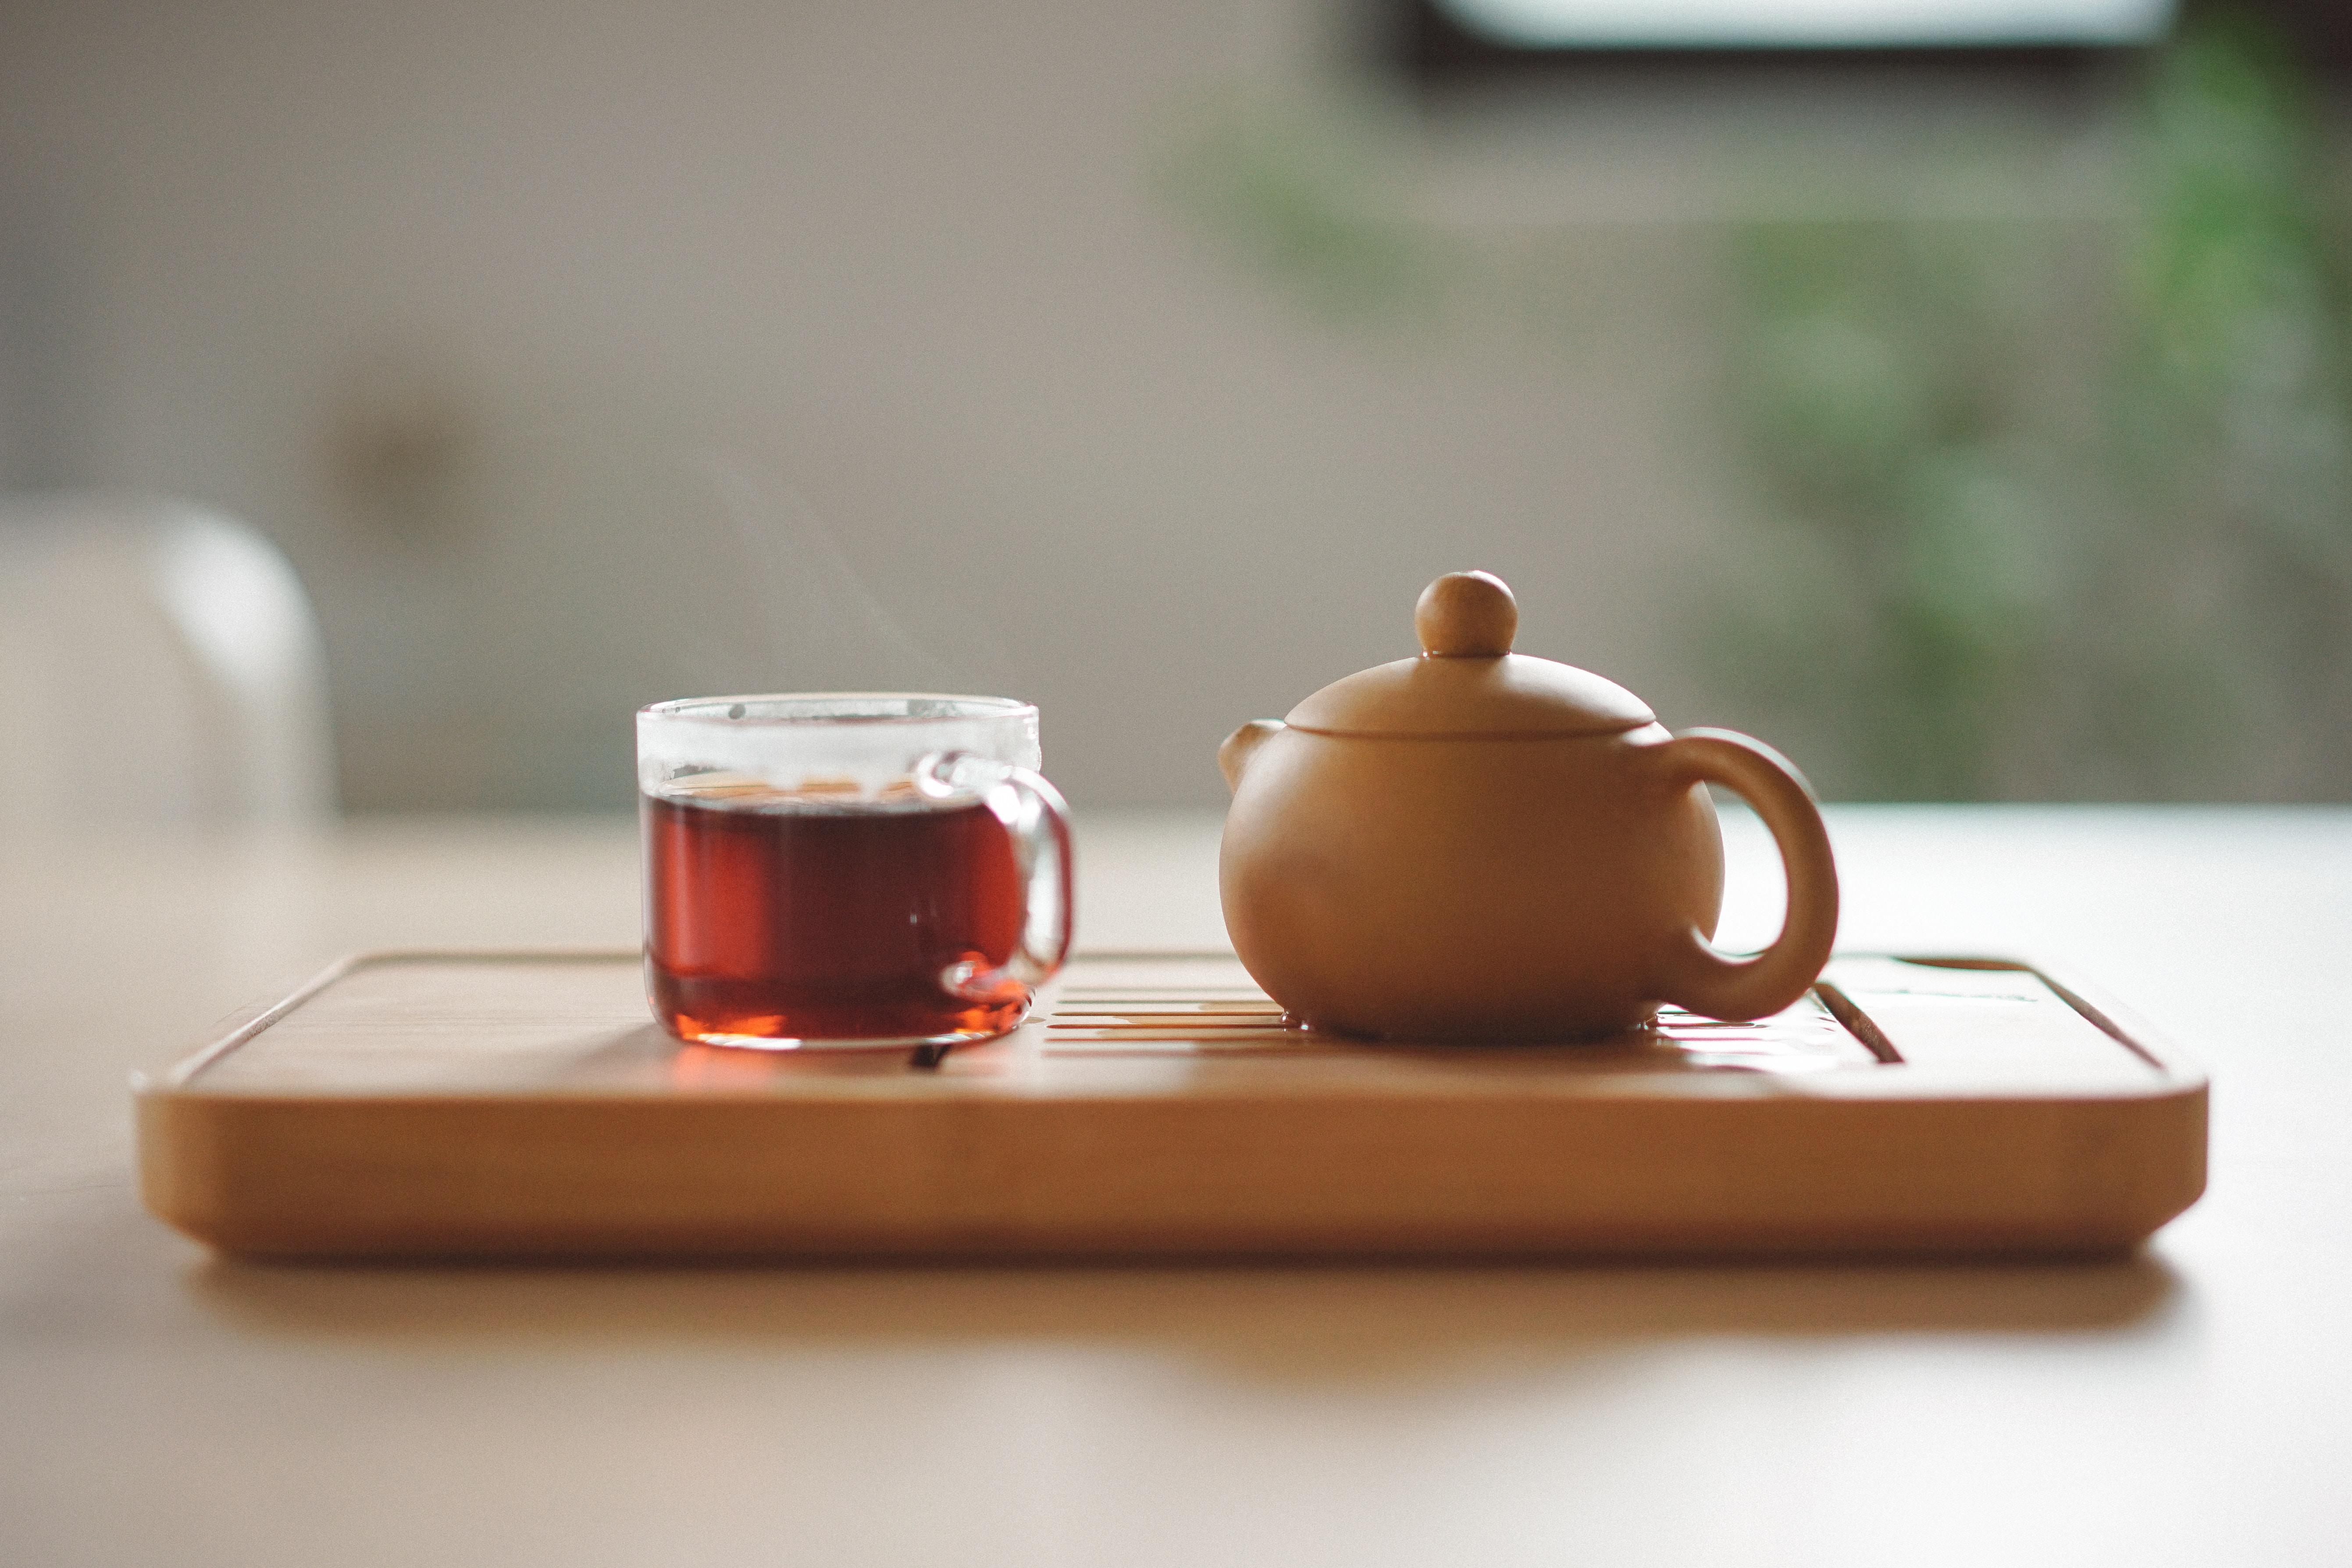 Having a chinwag, or a chat, over tea is another one of many British expressions